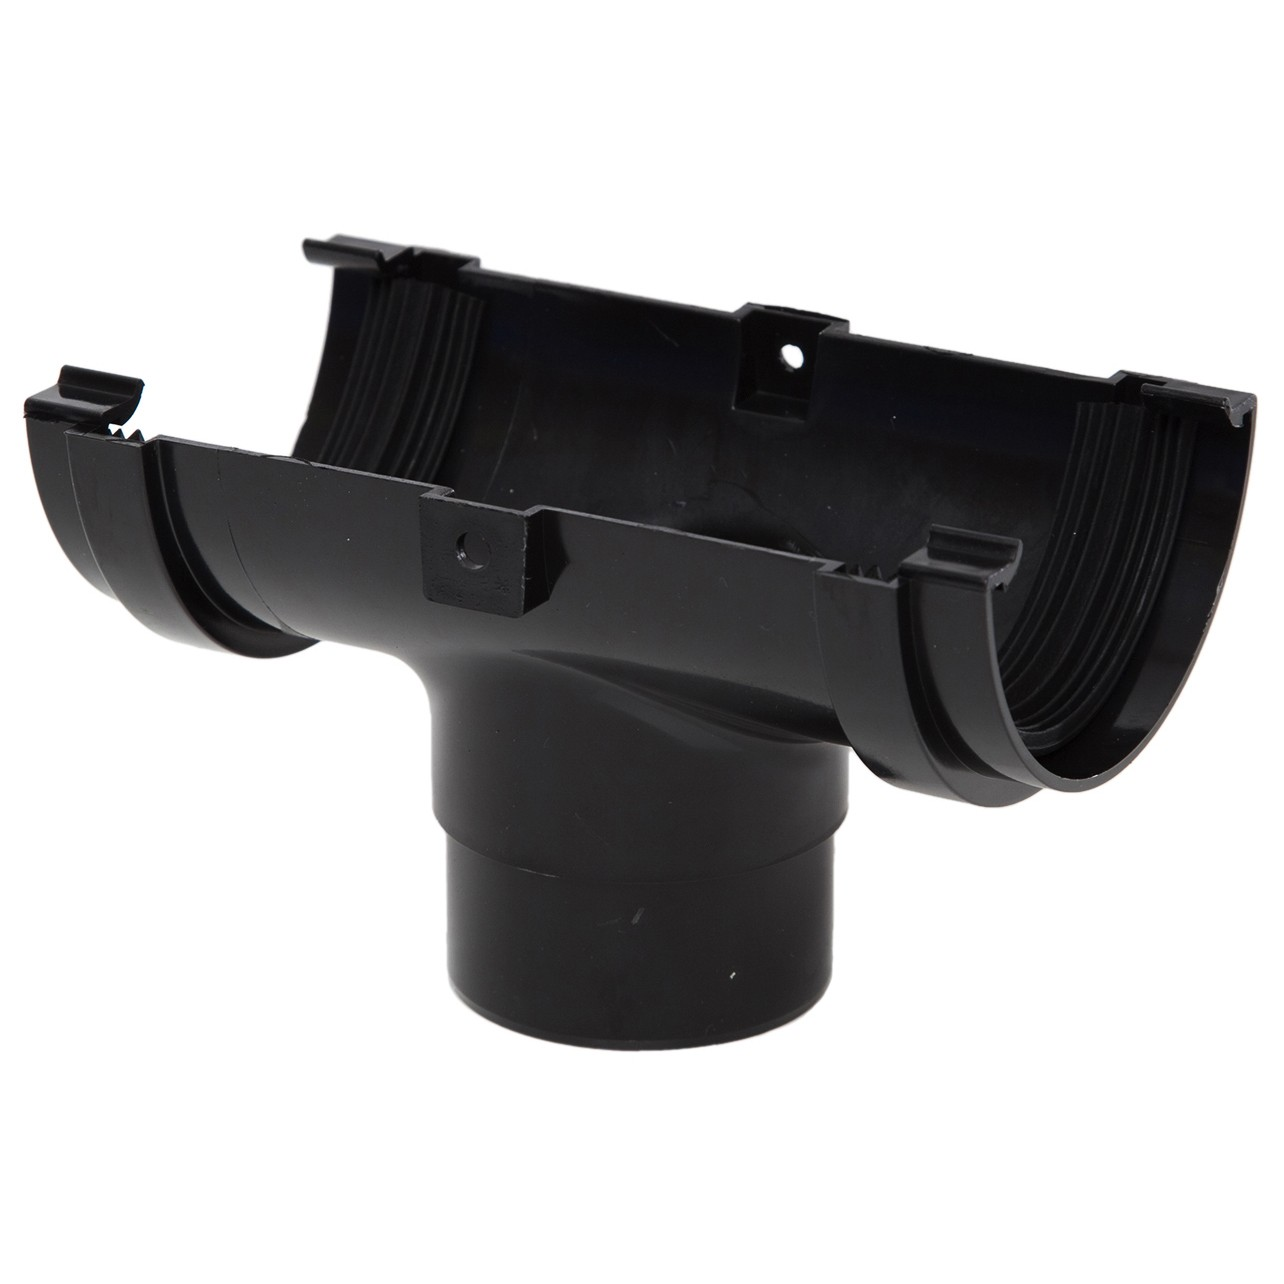 Polypipe 75mm Mini Half Round Gutter Running Outlet - Black